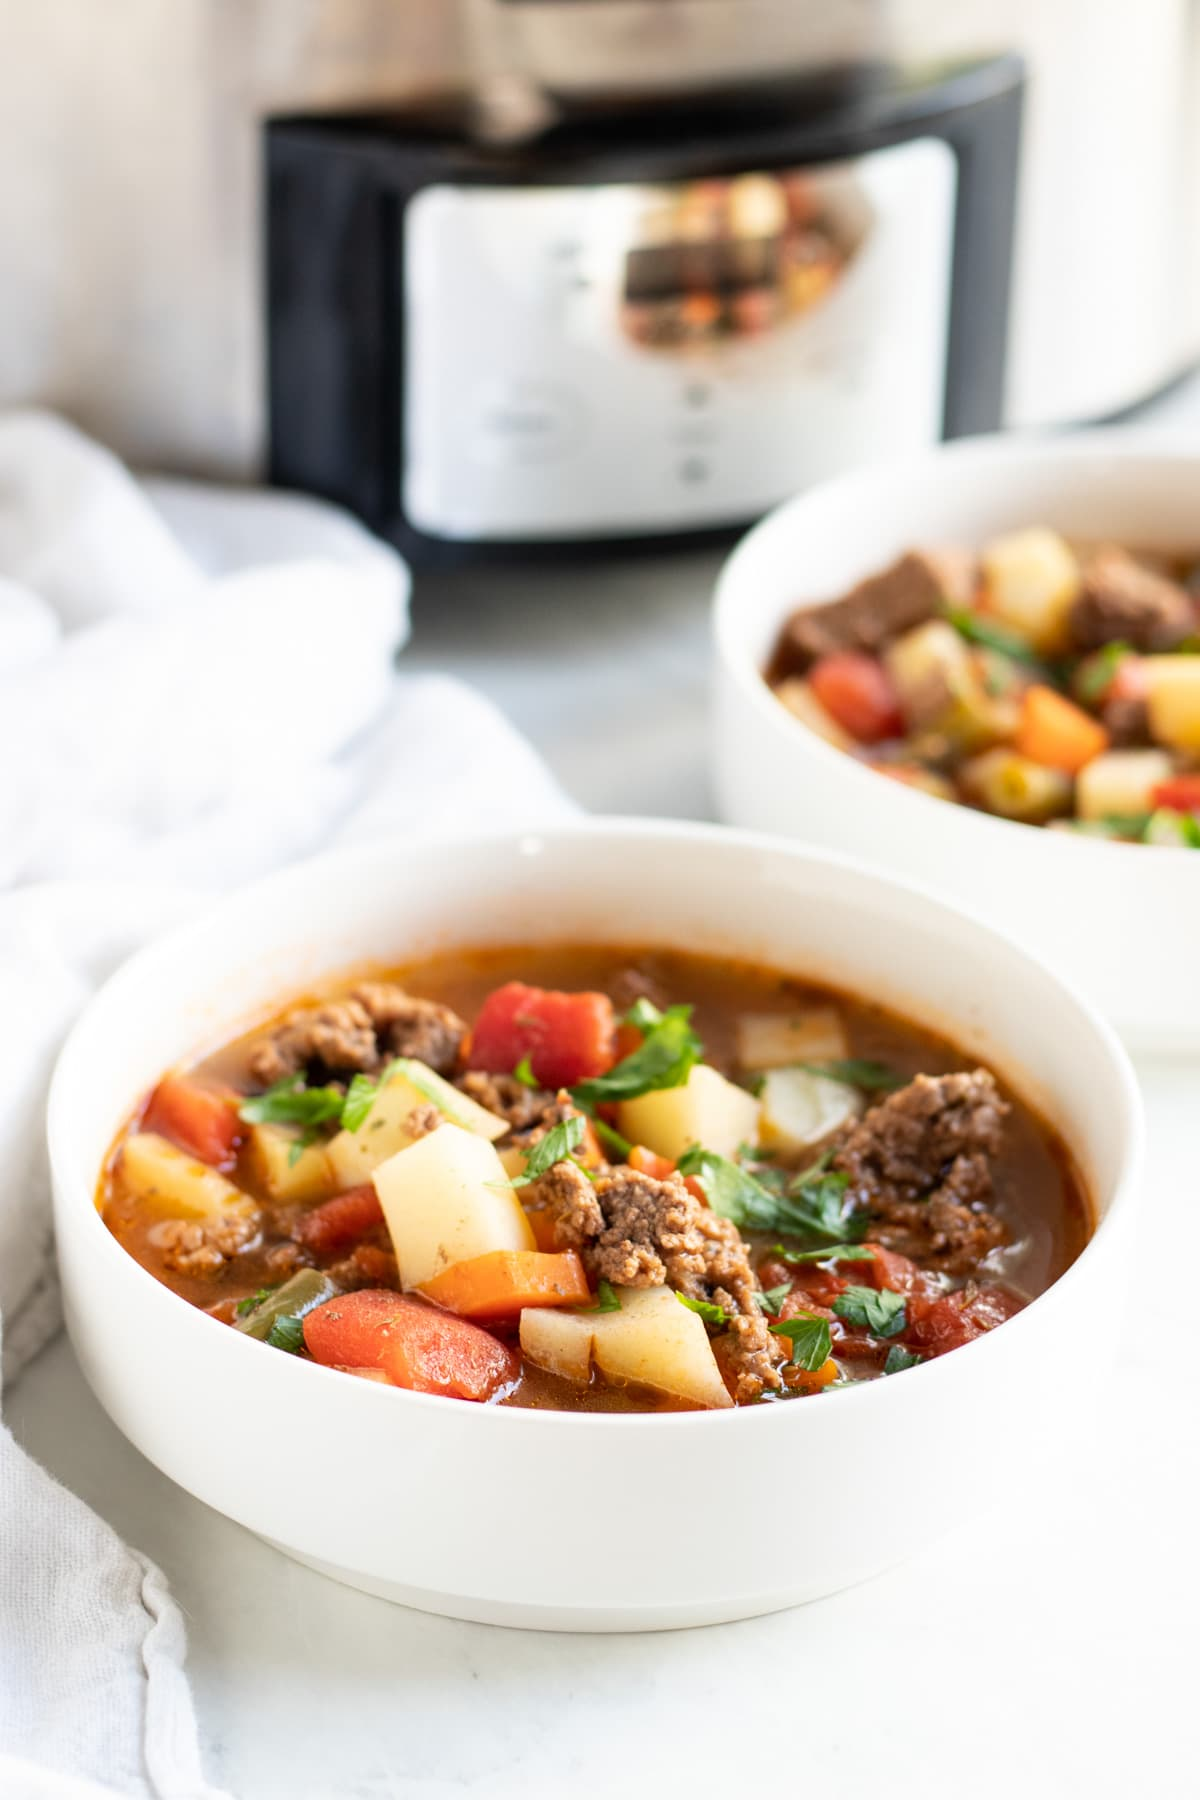 Two bowls of hamburger and veggie soup sit in front of the slow cooker where it was made.